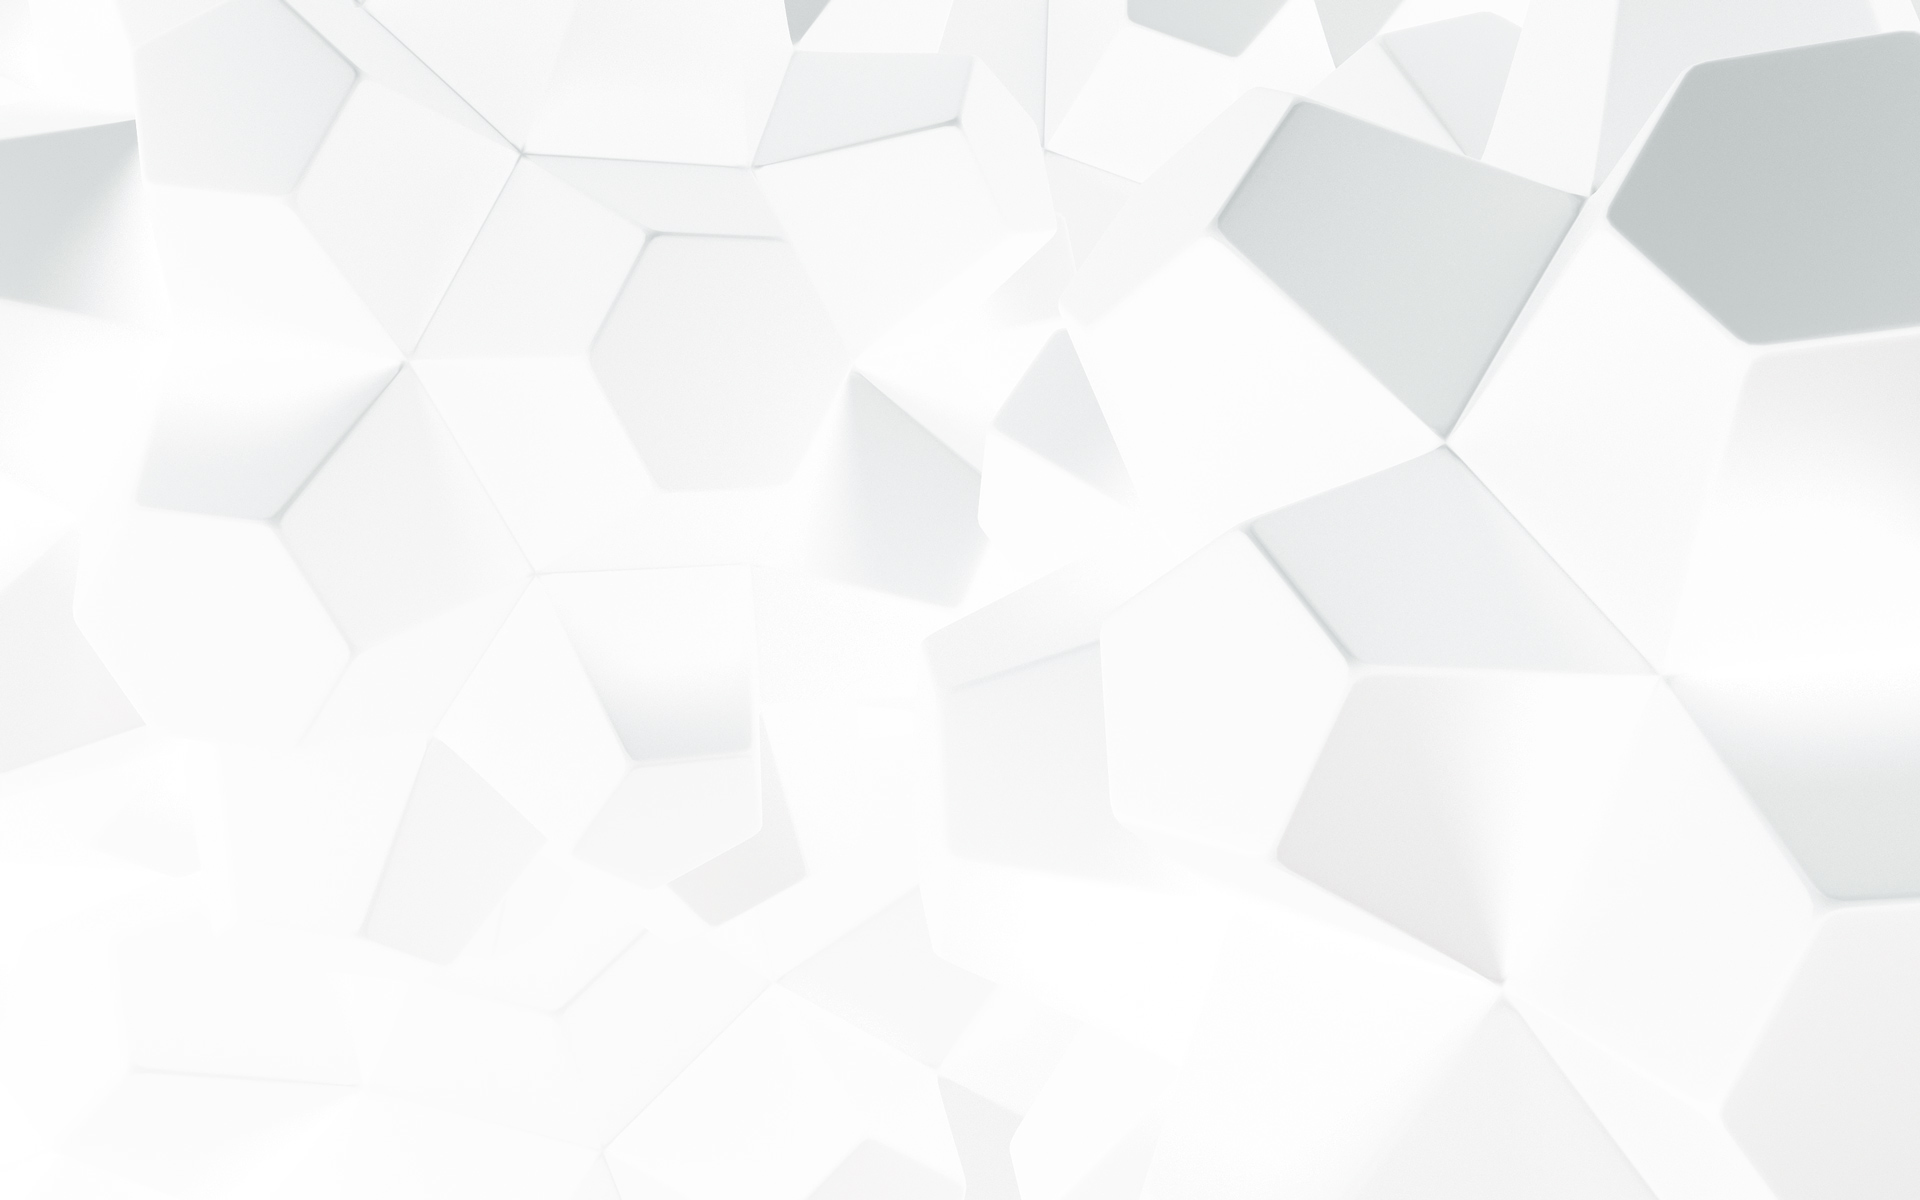 Download Clean White Wallpapers For Desktop Laptops 1920x1200